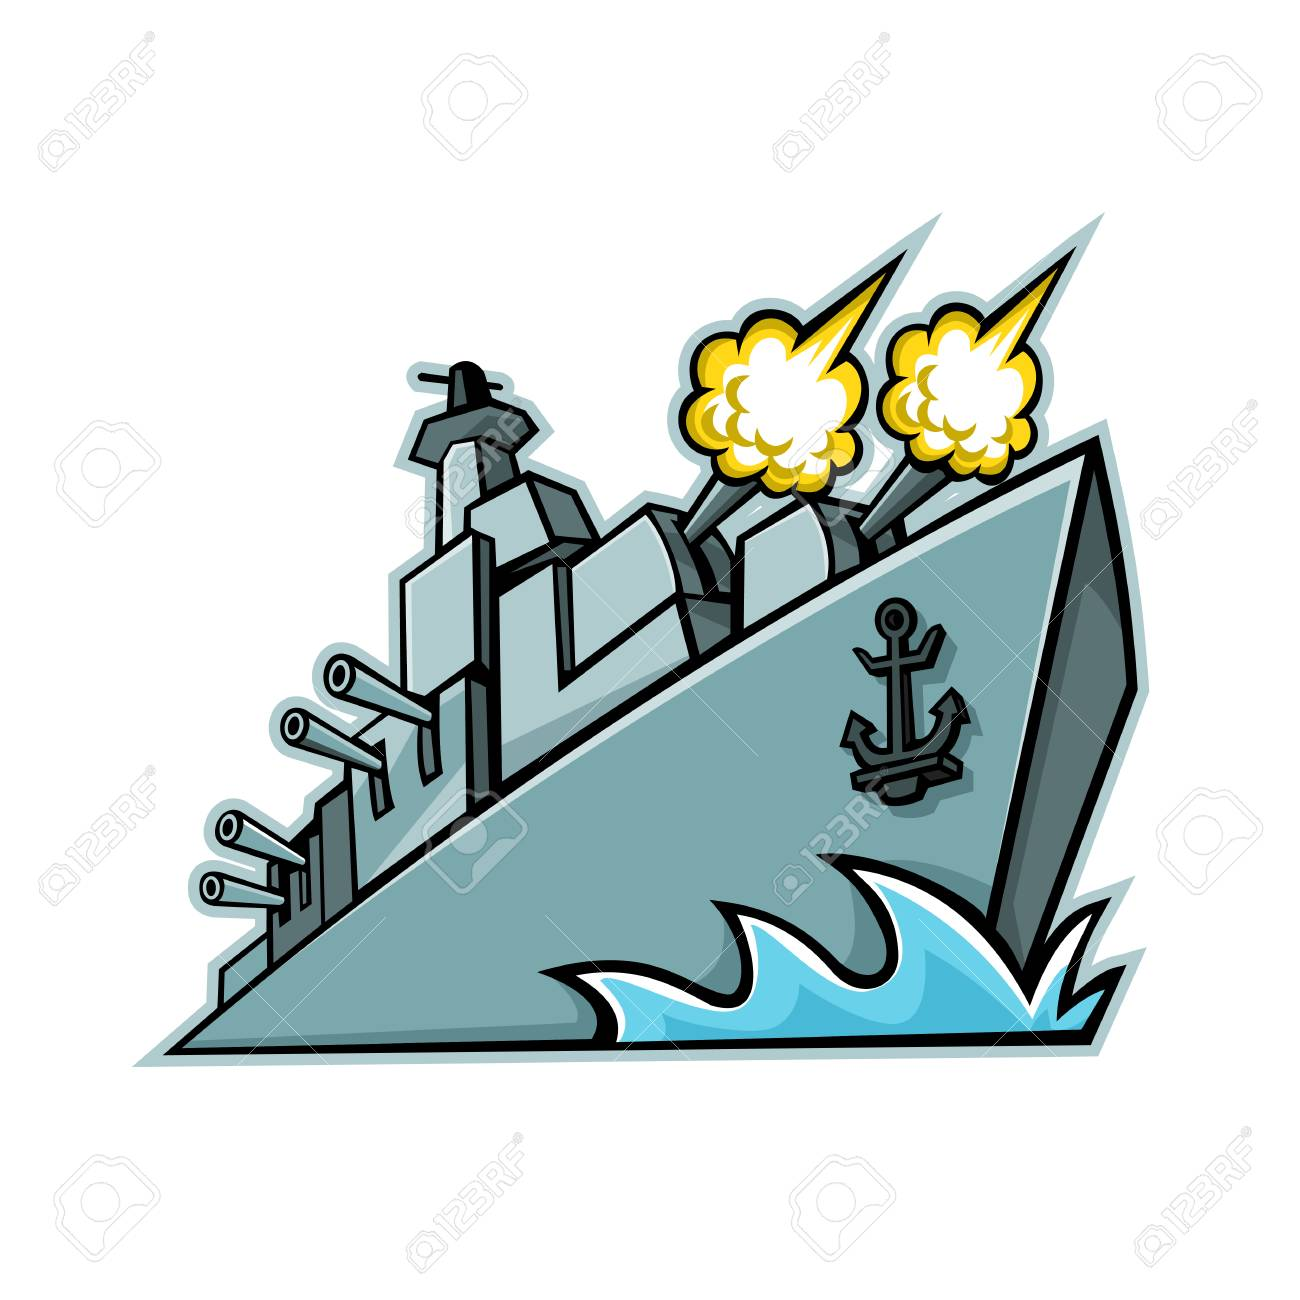 Mascot icon illustration of an American destroyer, warship or battleship with cannons firing viewed from a low angle on isolated background in retro style. - 103481558